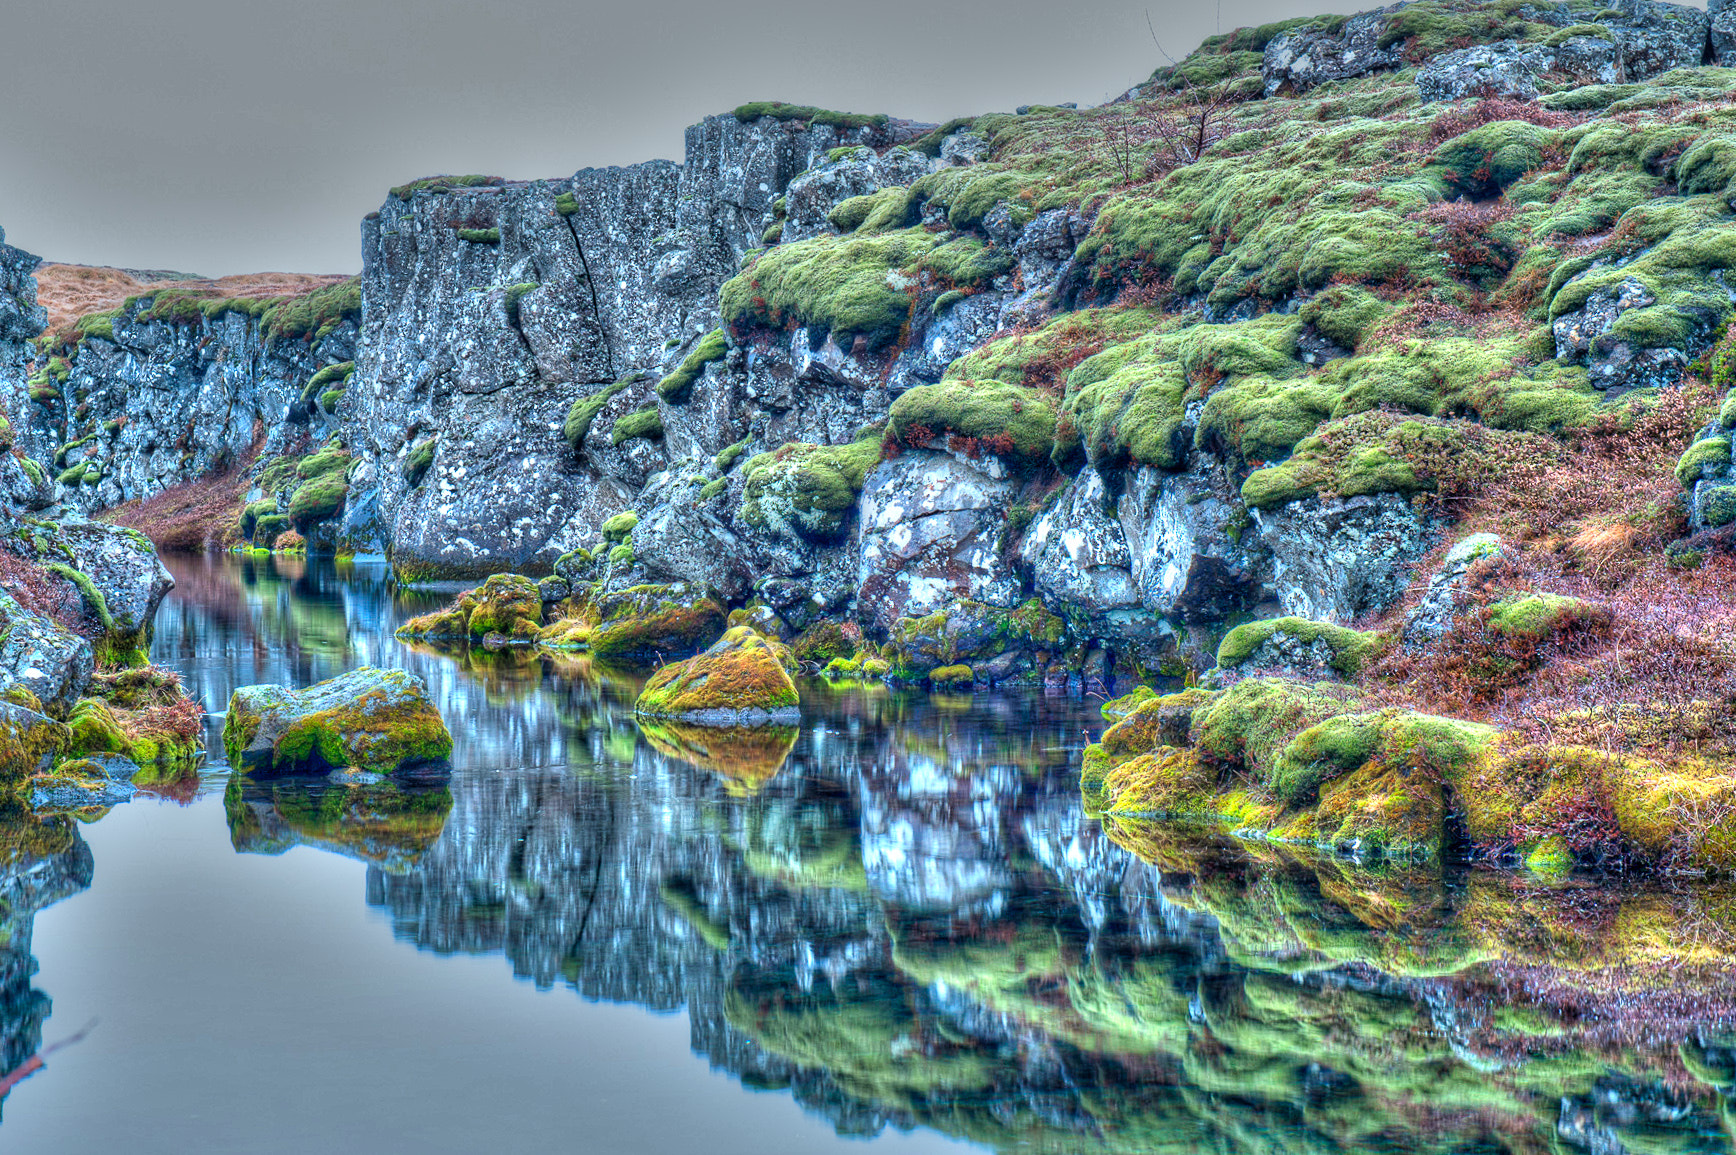 Photograph Colourful Reflection by Kim C on 500px